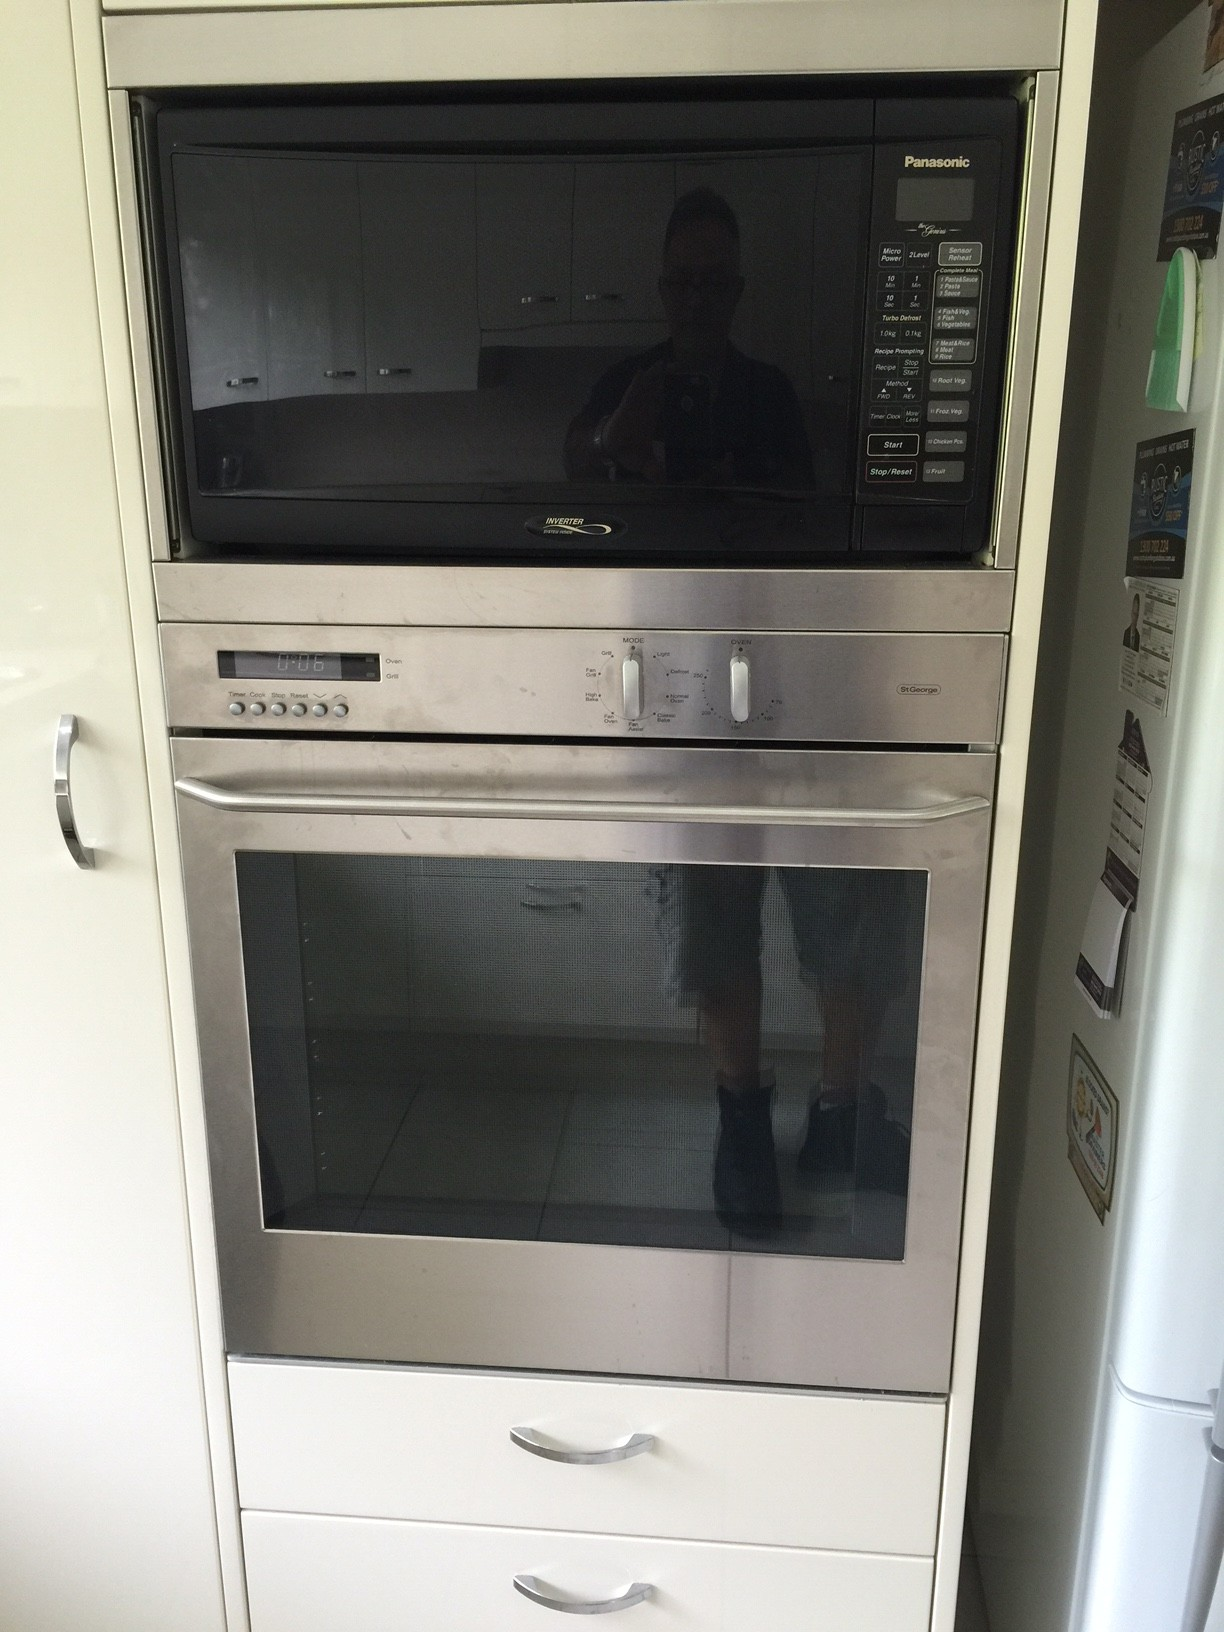 Works Perfect Appliances Services Oven Repairs St George